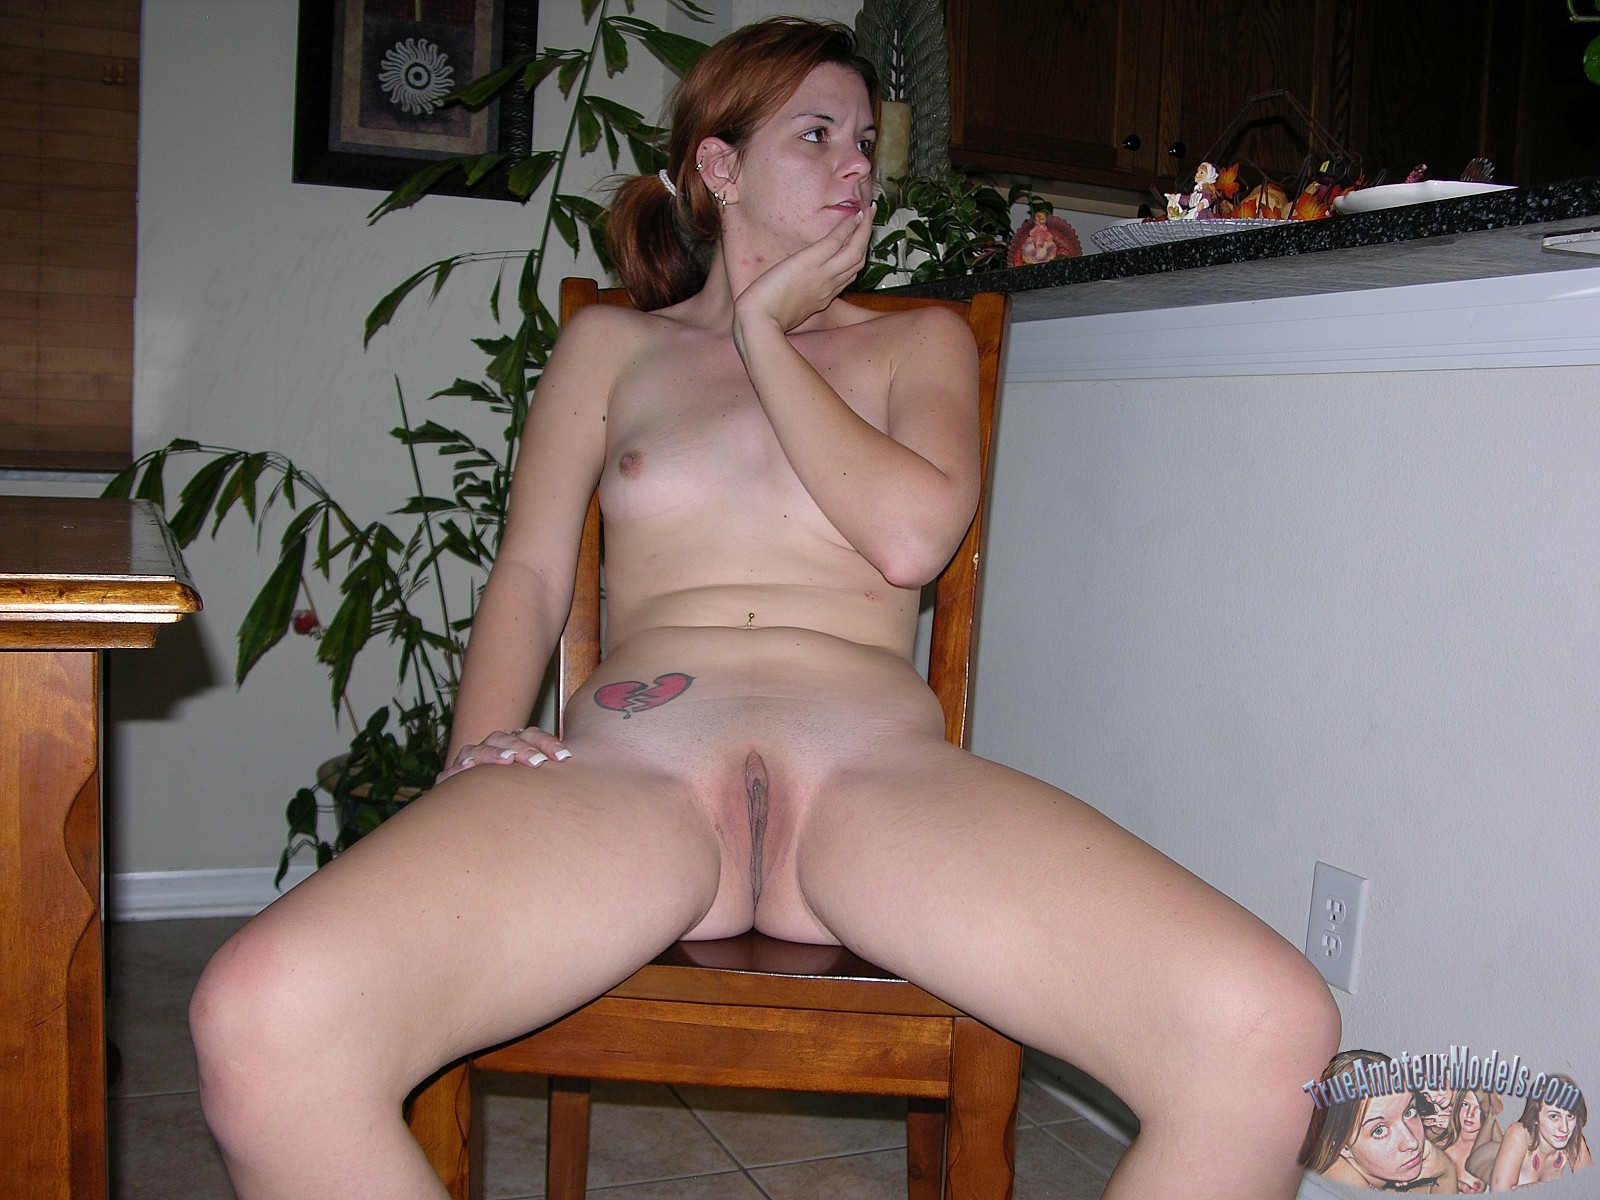 naked Amateur asshole spread